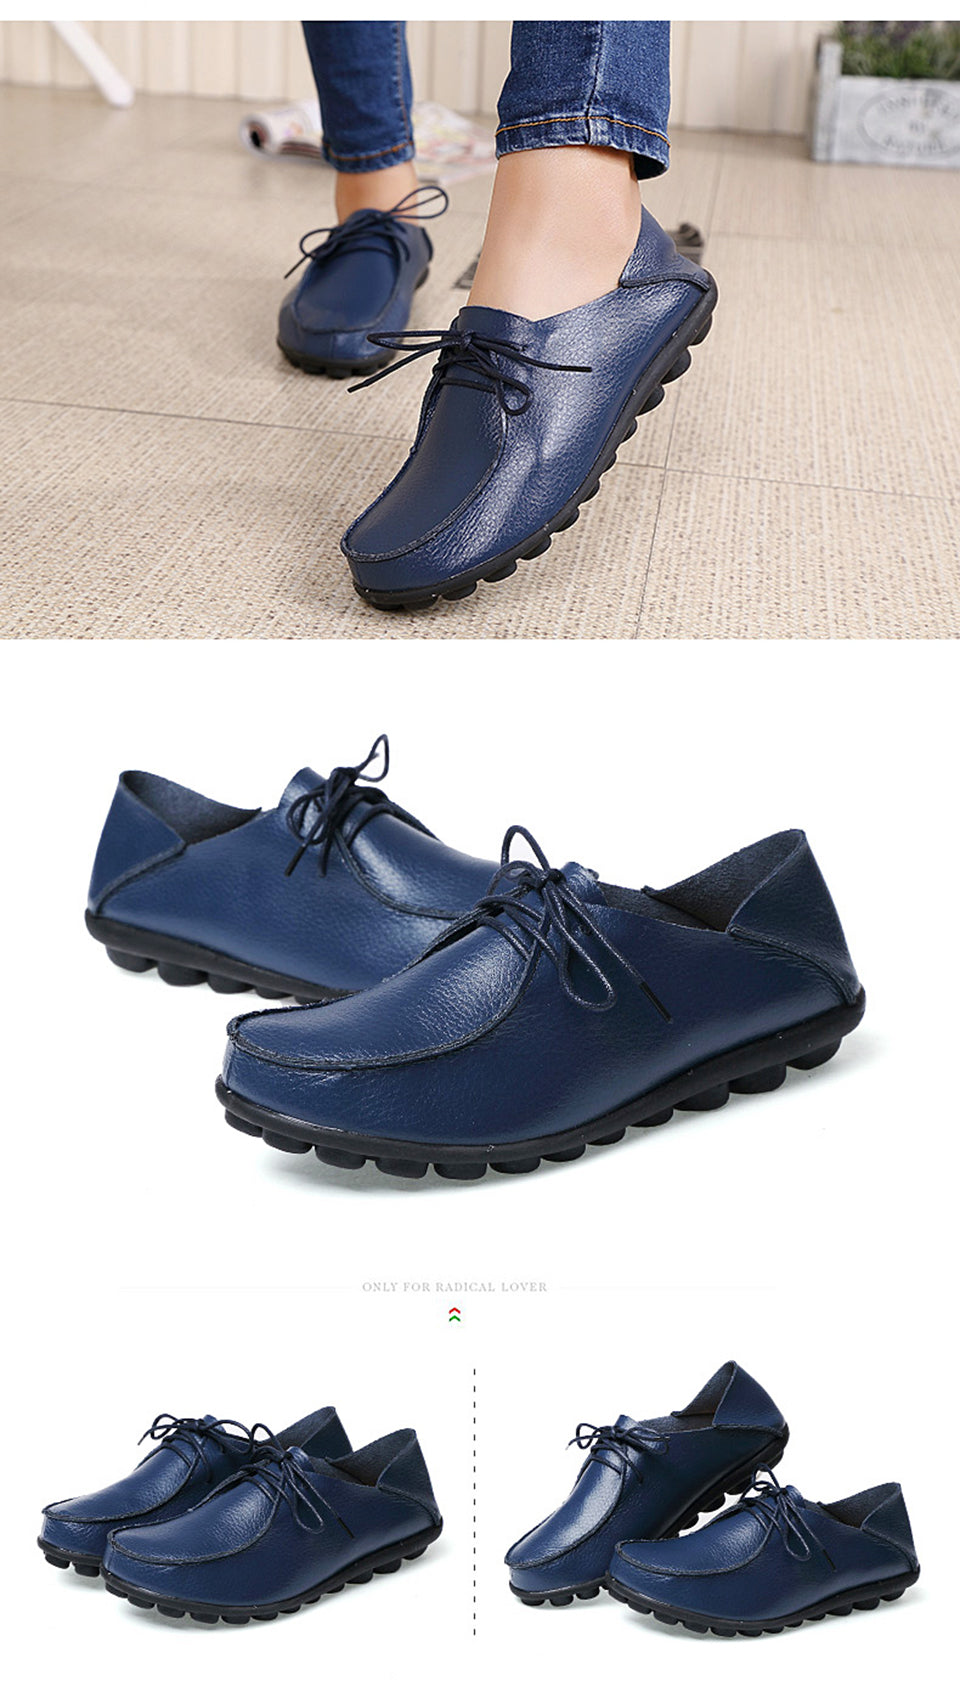 more dark blue lace up leather shoes with black nodulated grippy base 01